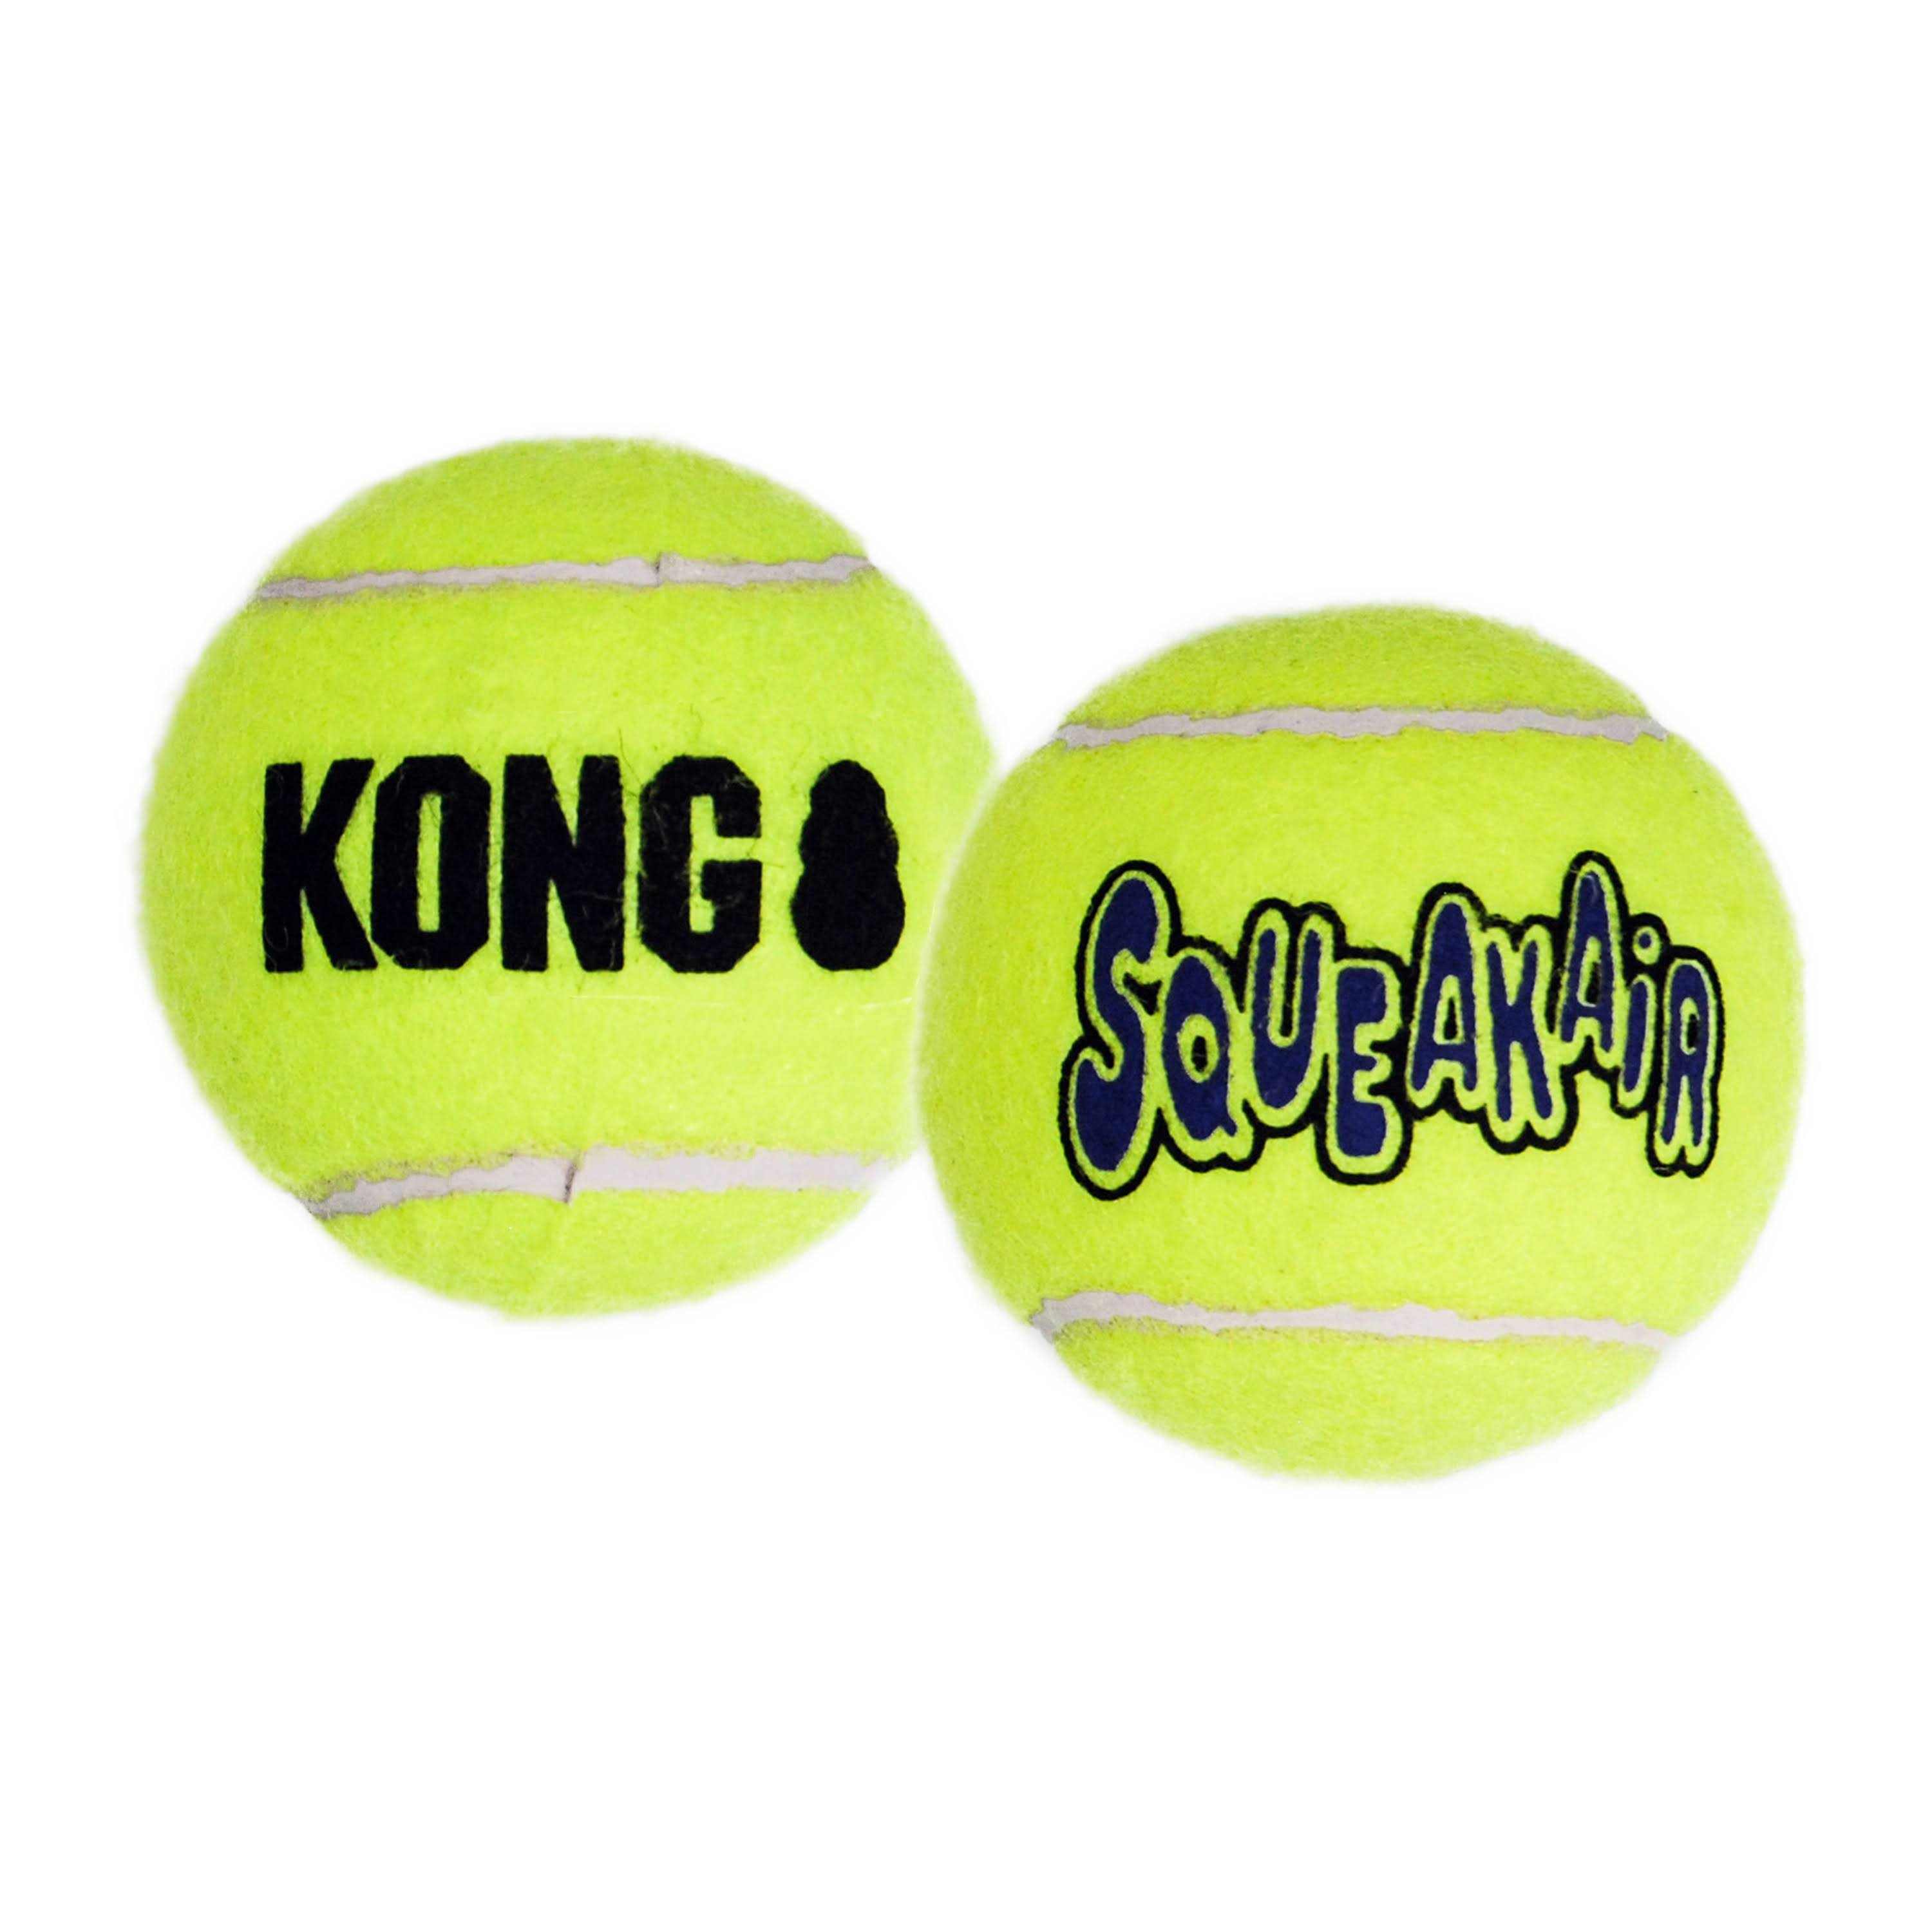 Kong Air Dog Squeaker Ball - XLarge